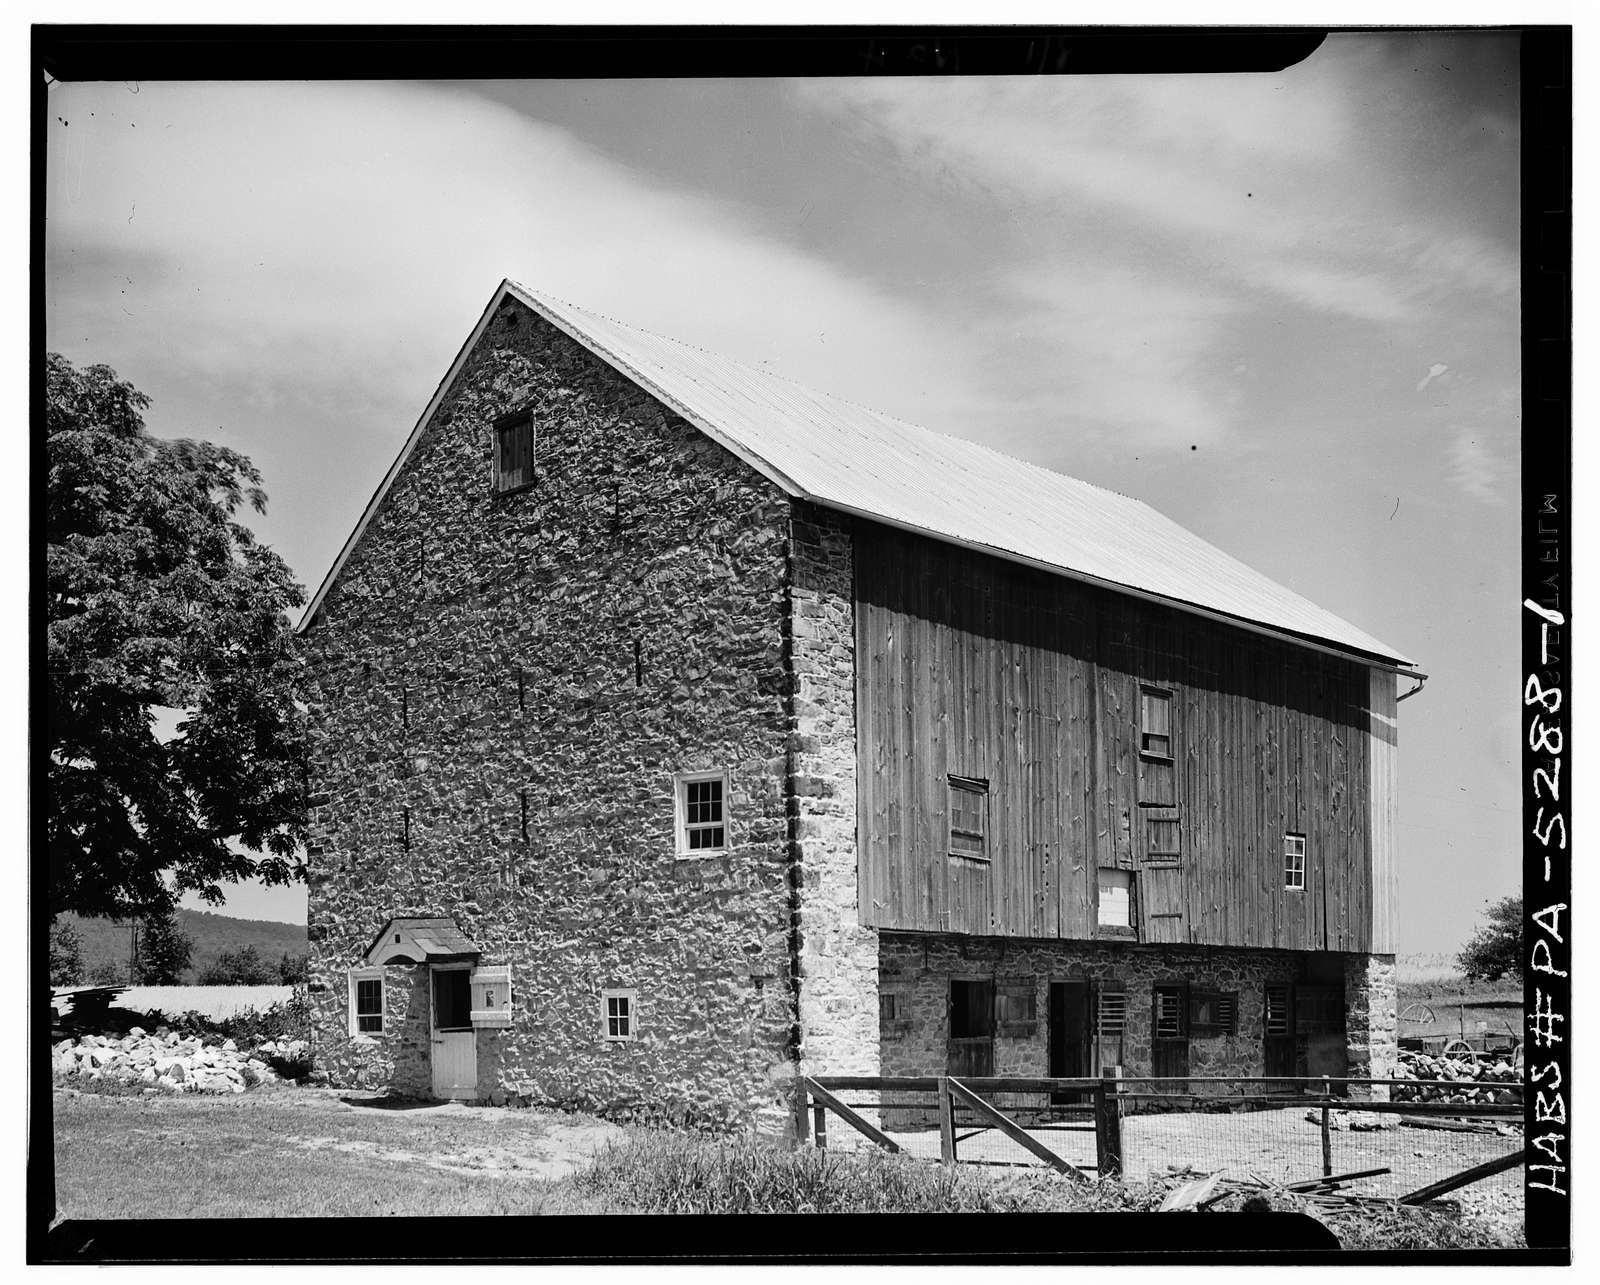 Stone Barn (1790), State Route 212 (Springfield Township), Springtown, Bucks County, PA